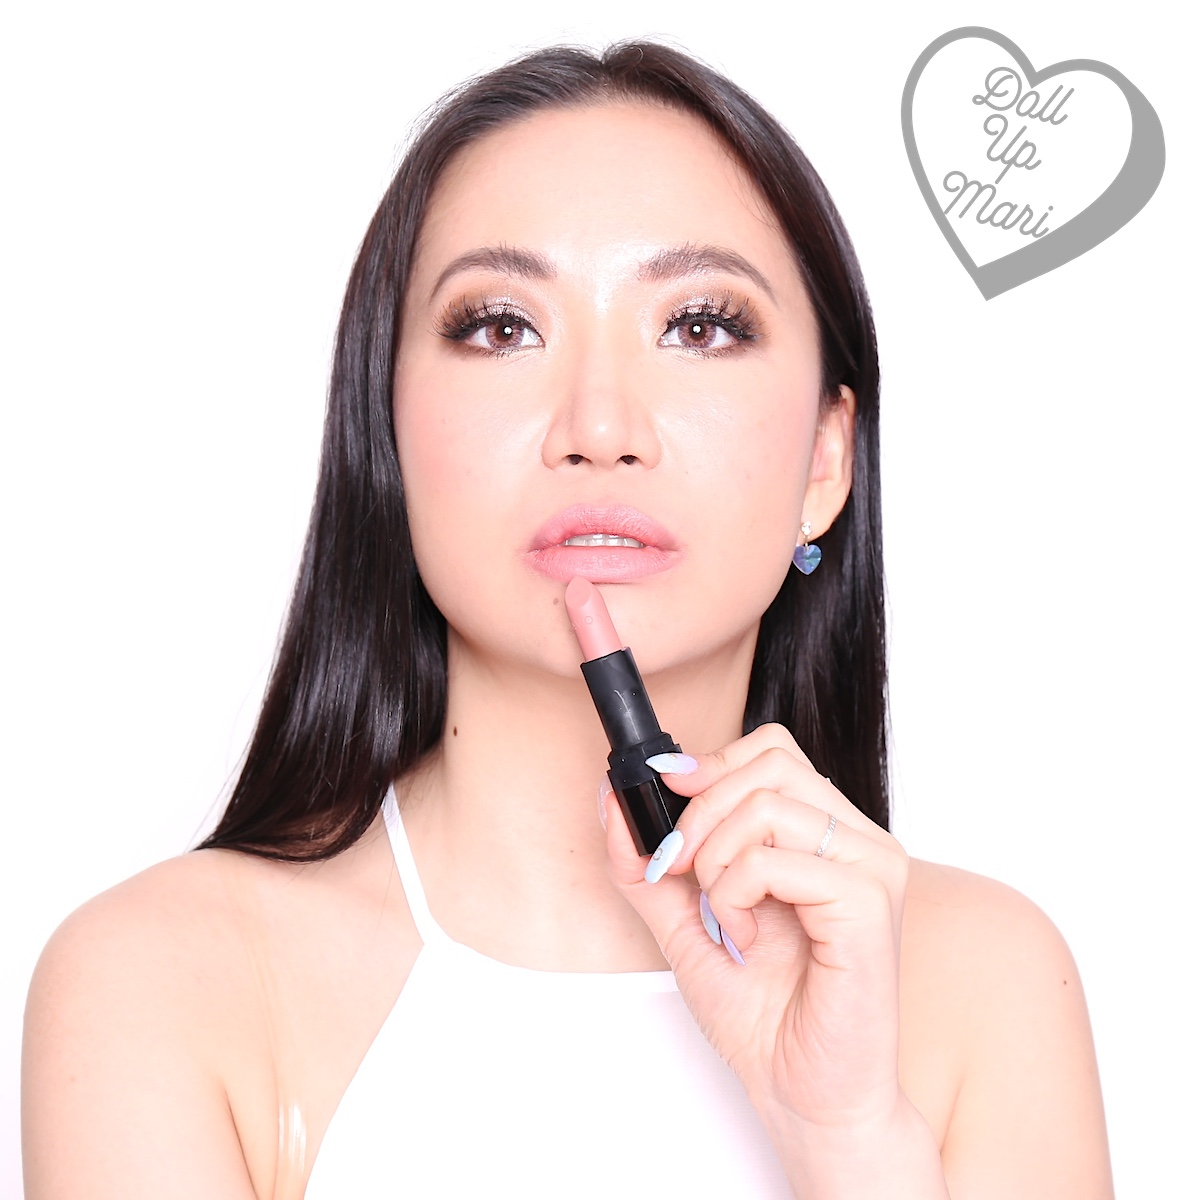 Mari wearing Rouged Perfection shade of AVON Perfectly Matte Lipstick